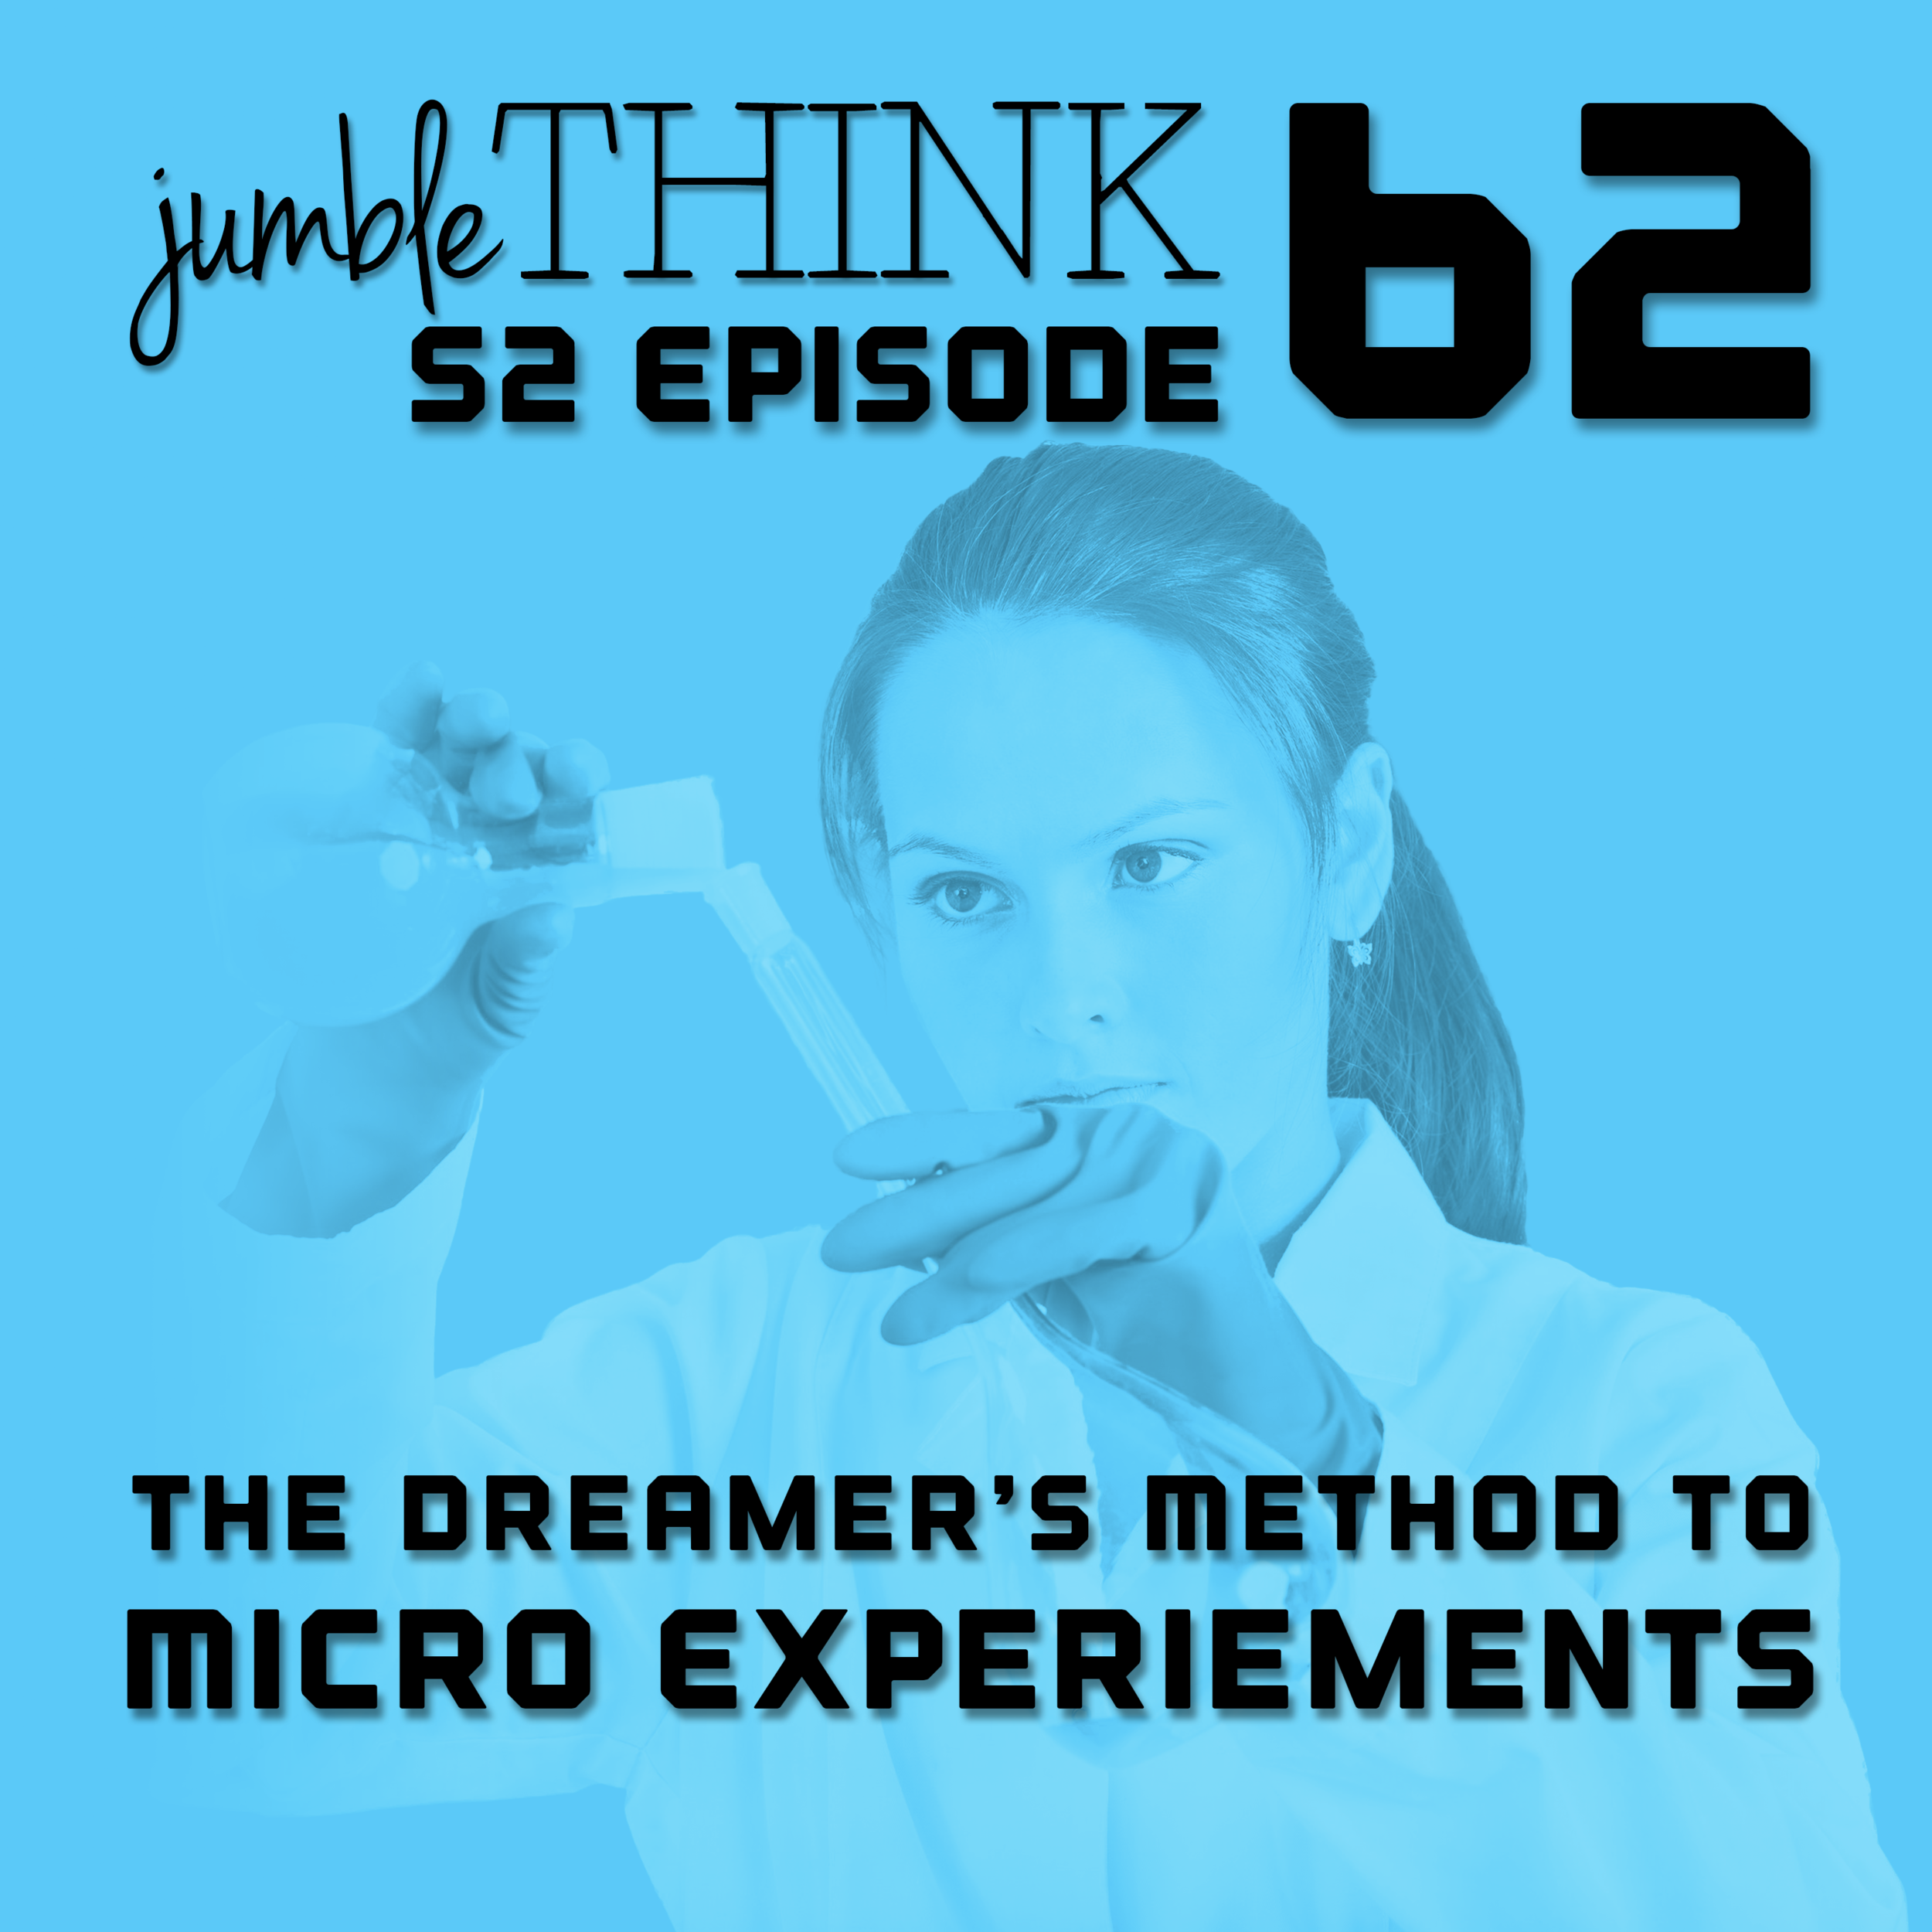 The Dreamer's Method to Micro Experiments